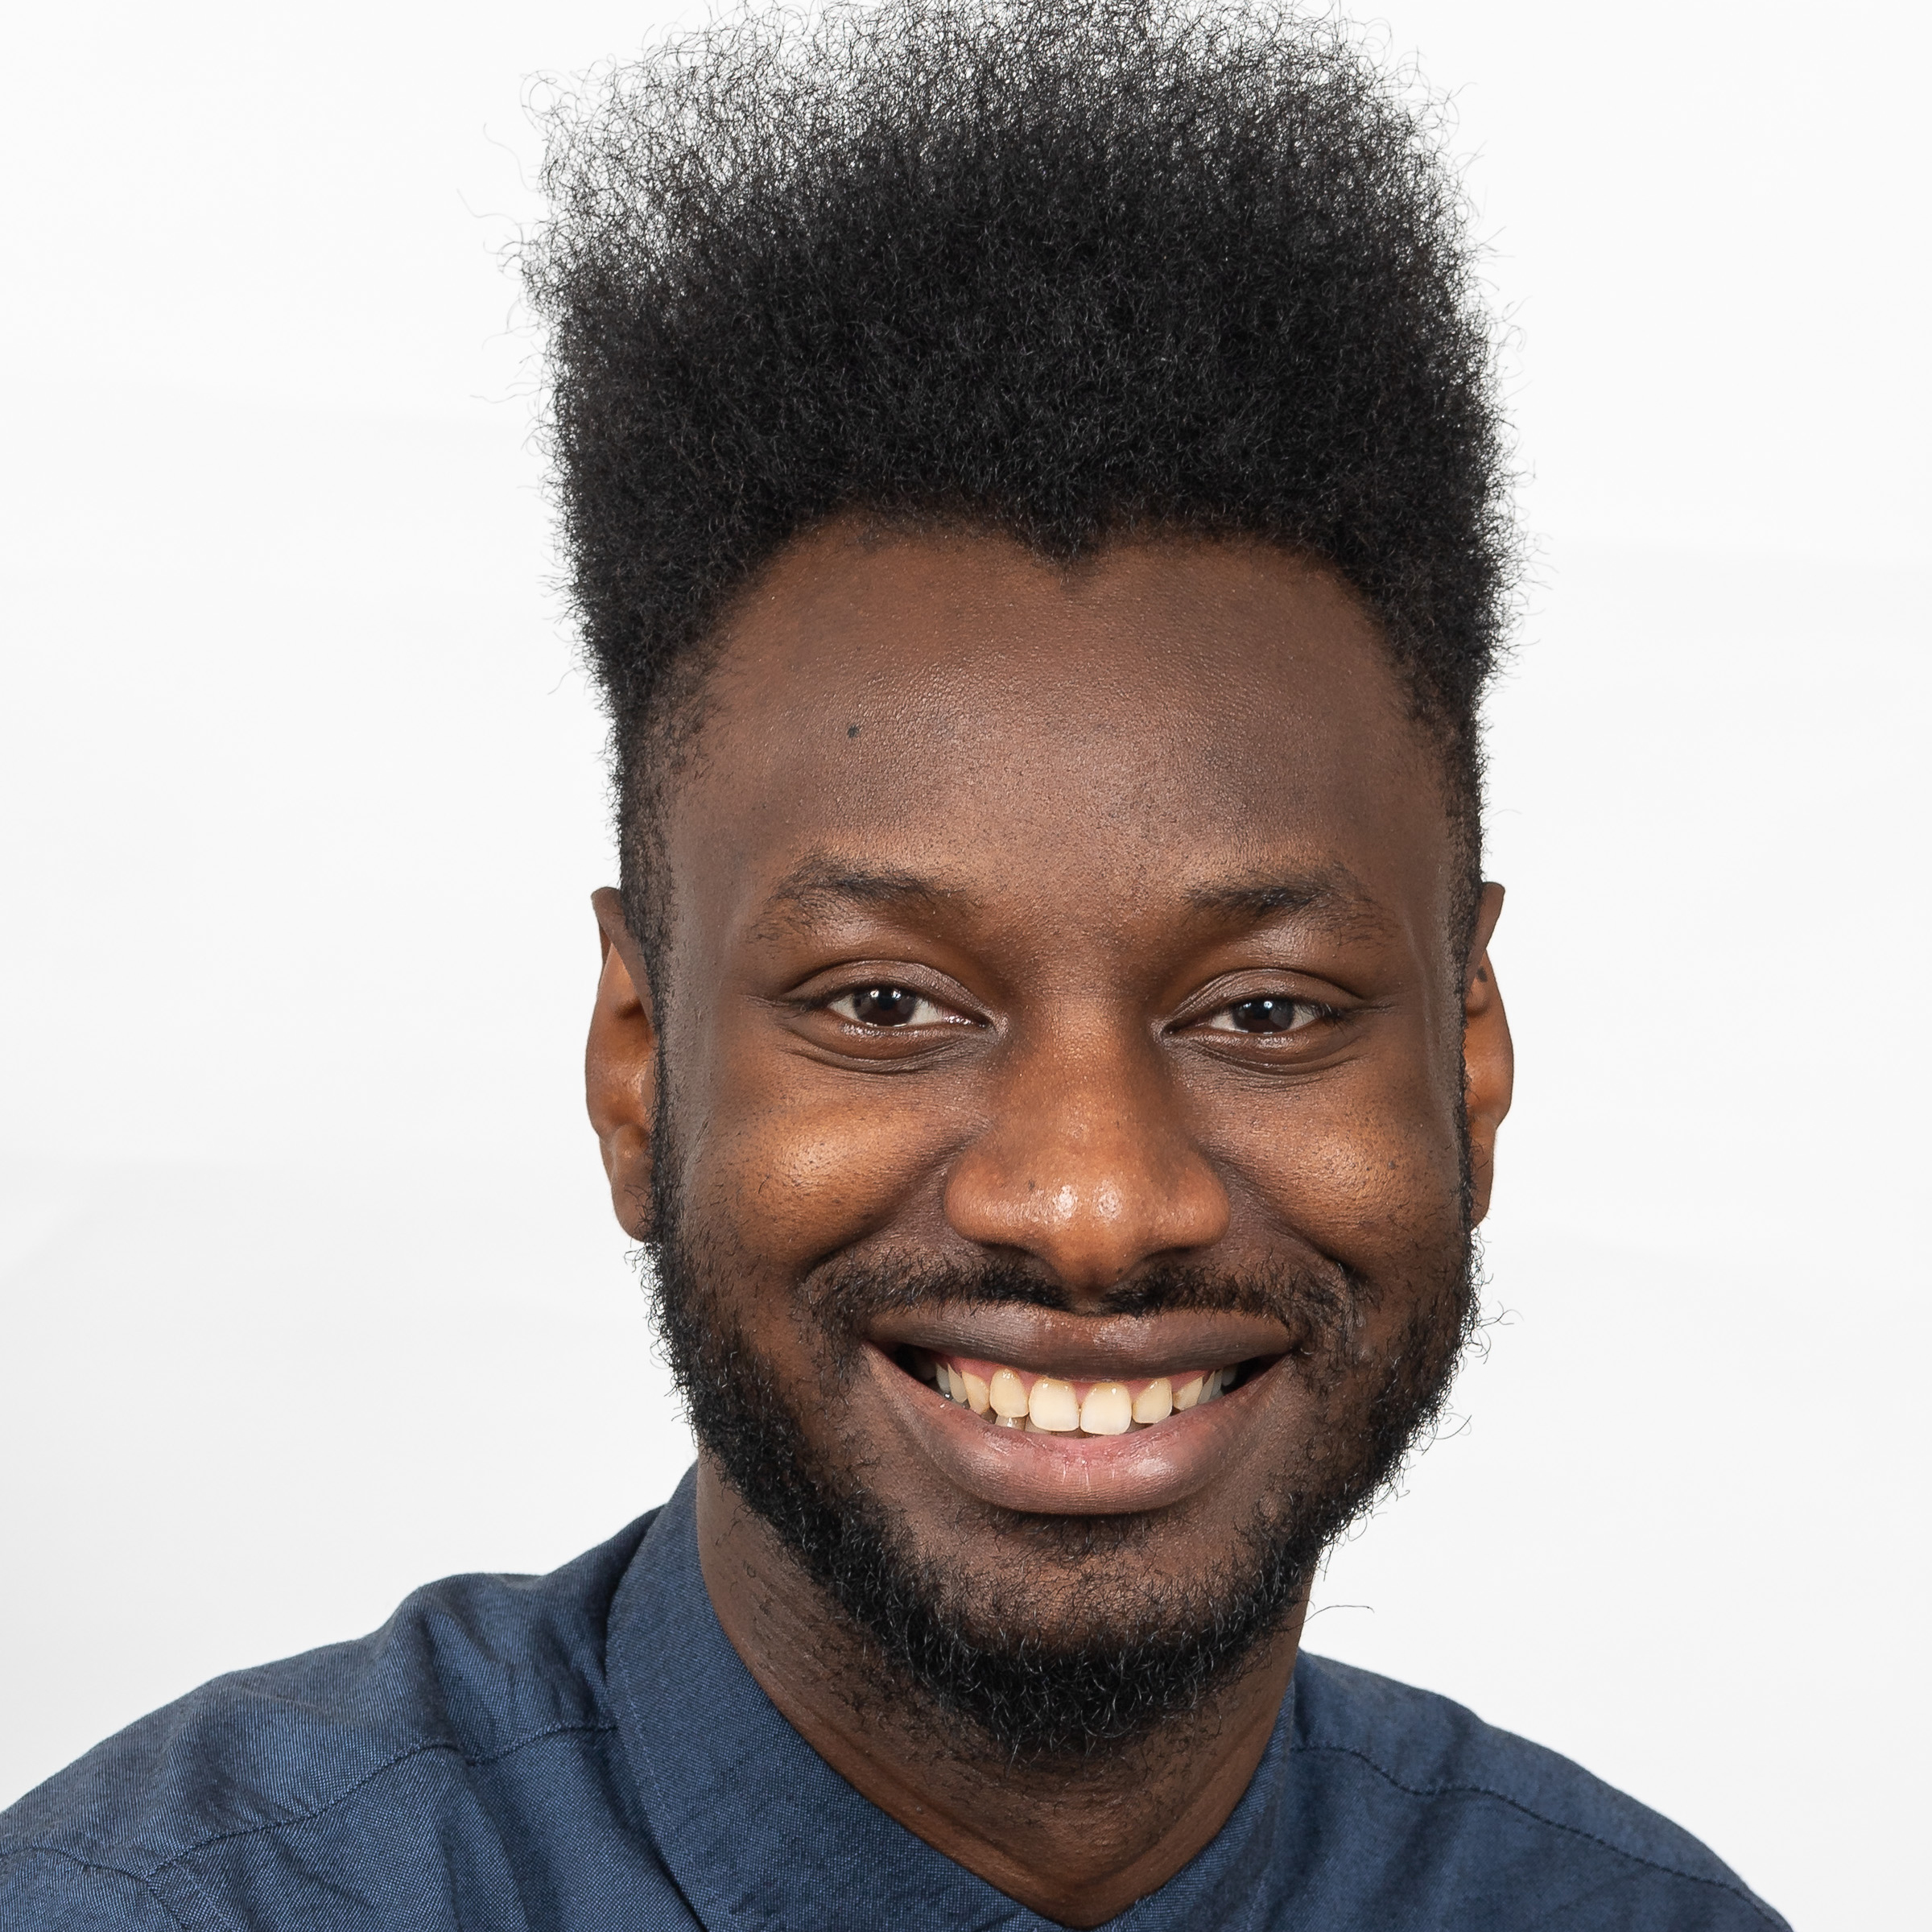 EFOSA OMOROGBE,  SENIOR FRONTEND & UX ENGINEER  Efosa is Senior Frontend & UX Engineer at Hivemind, where he helps improve the user experience of Hivemind's Software platform.   READ MORE